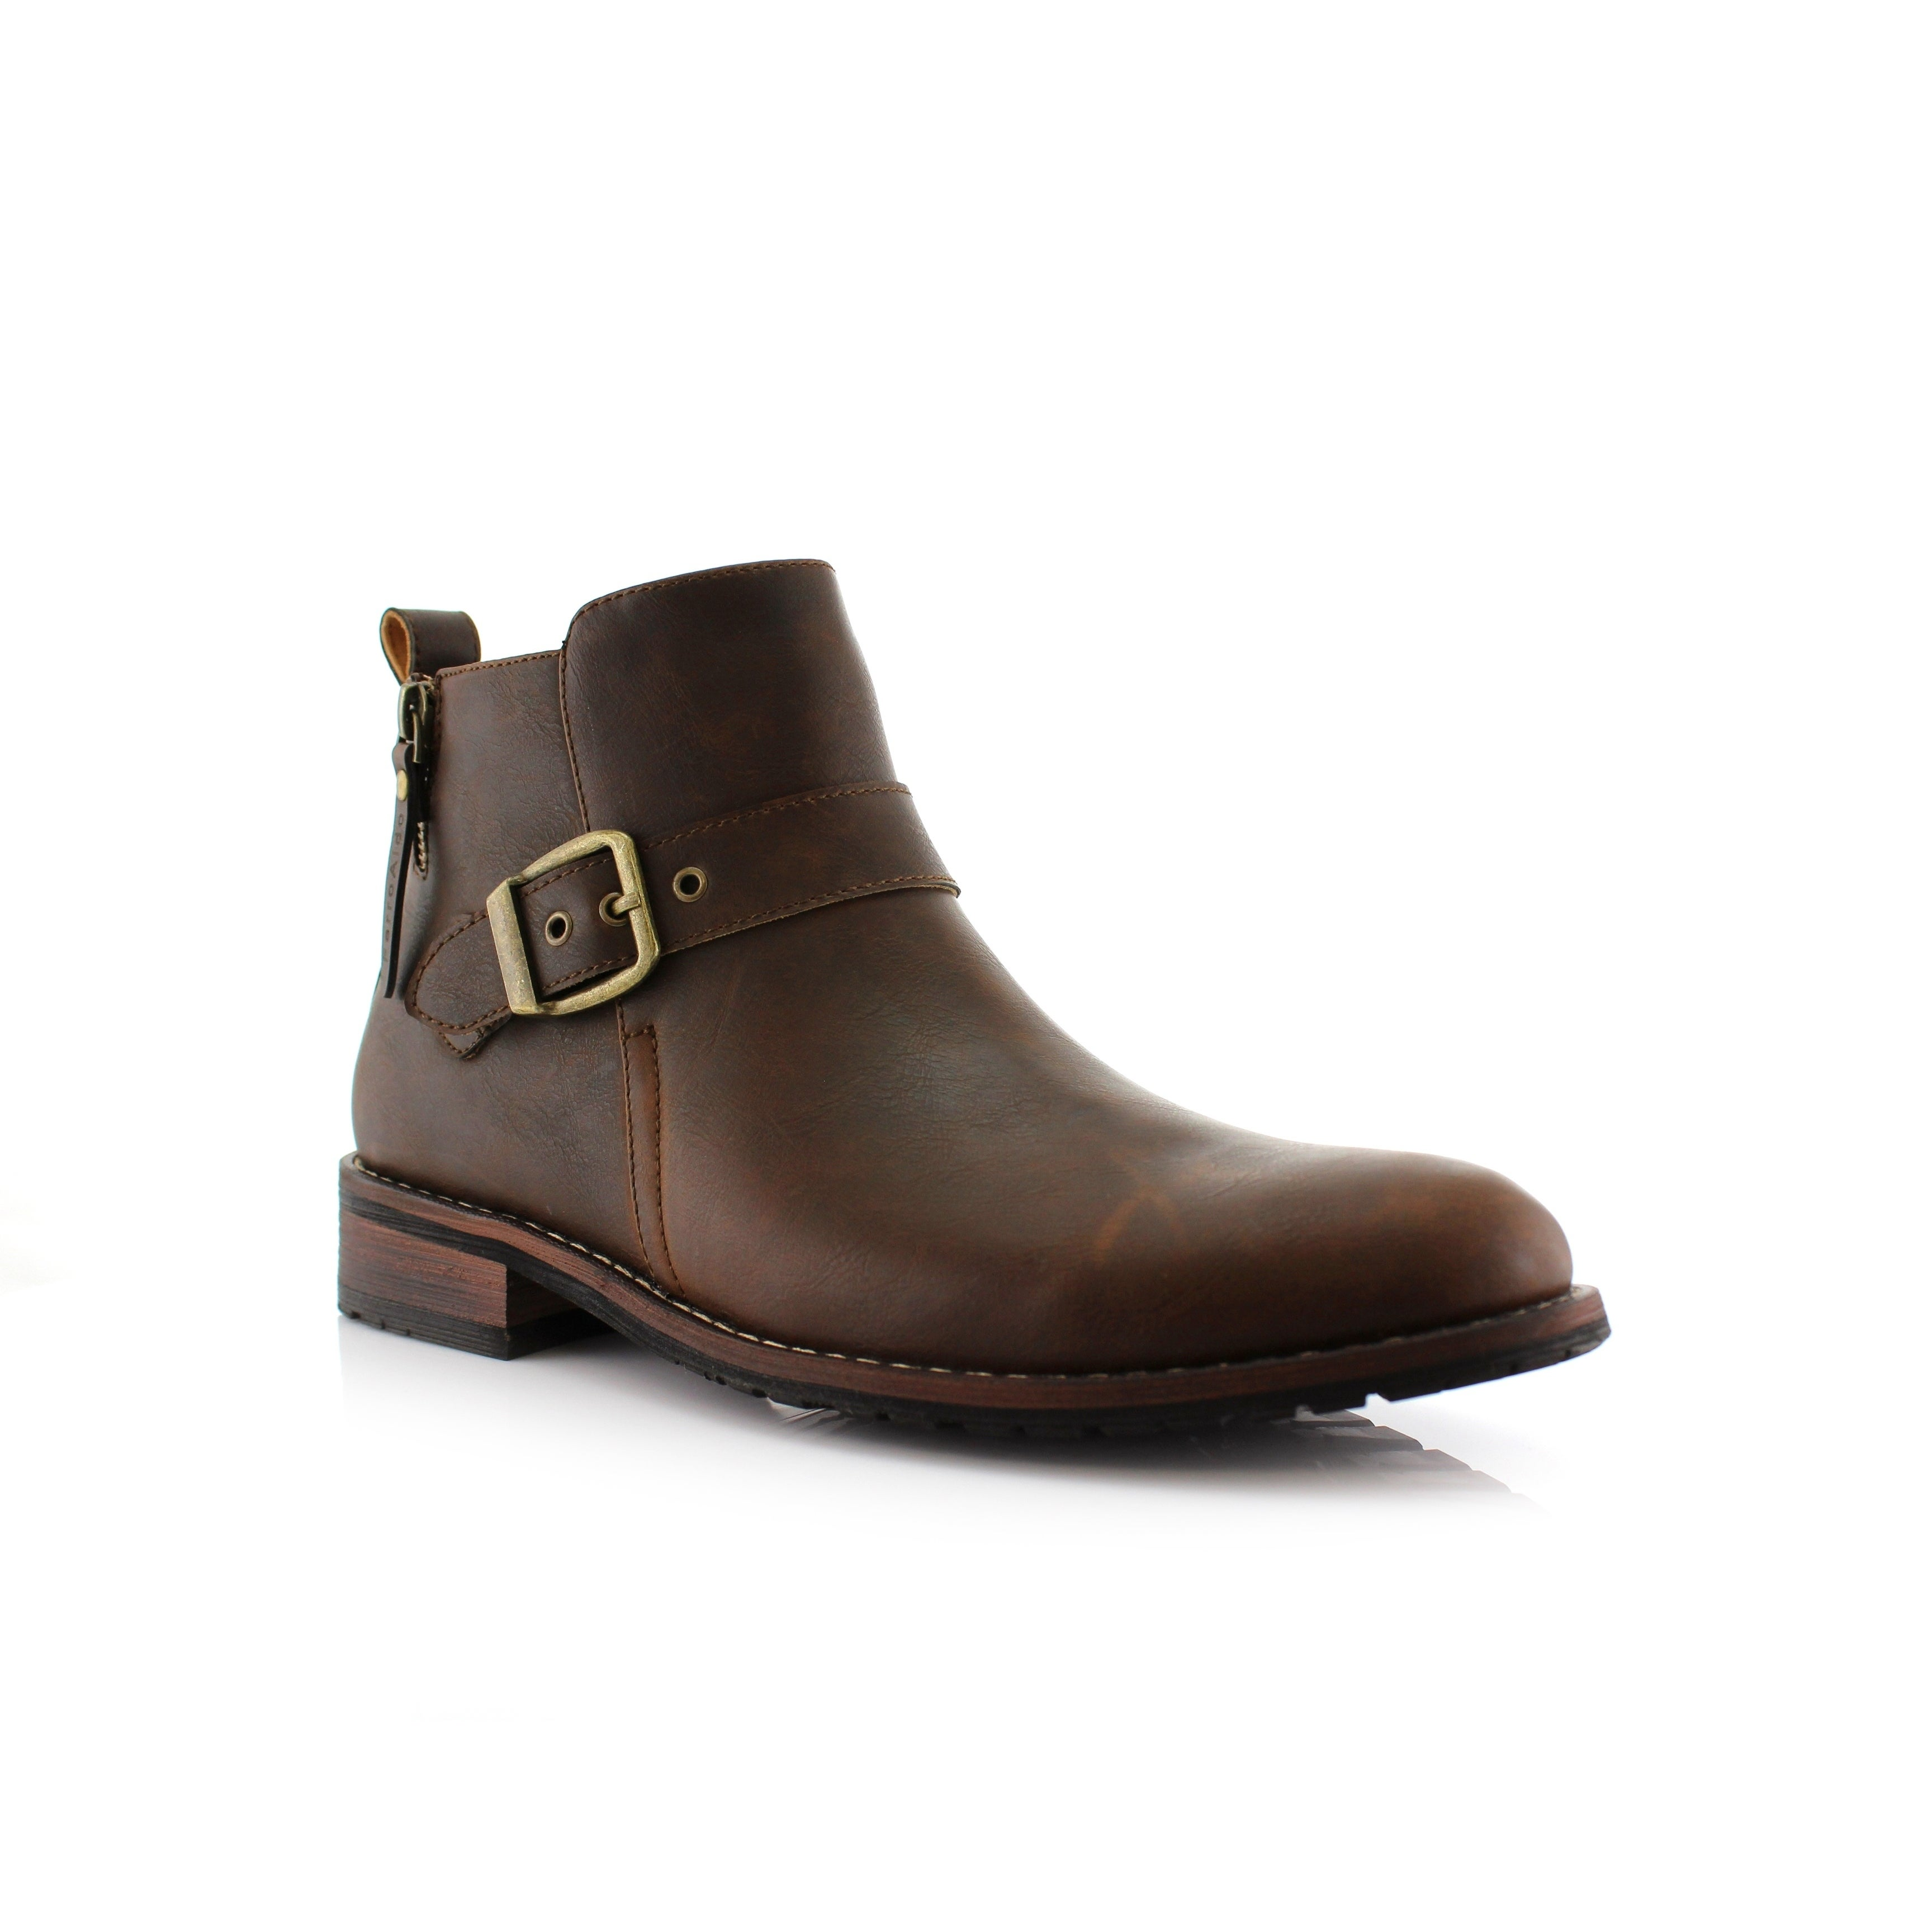 e8c2ce3860f Ferro Aldo Dalton MFA606322 Men's Ankle Boots For Everyday Wear